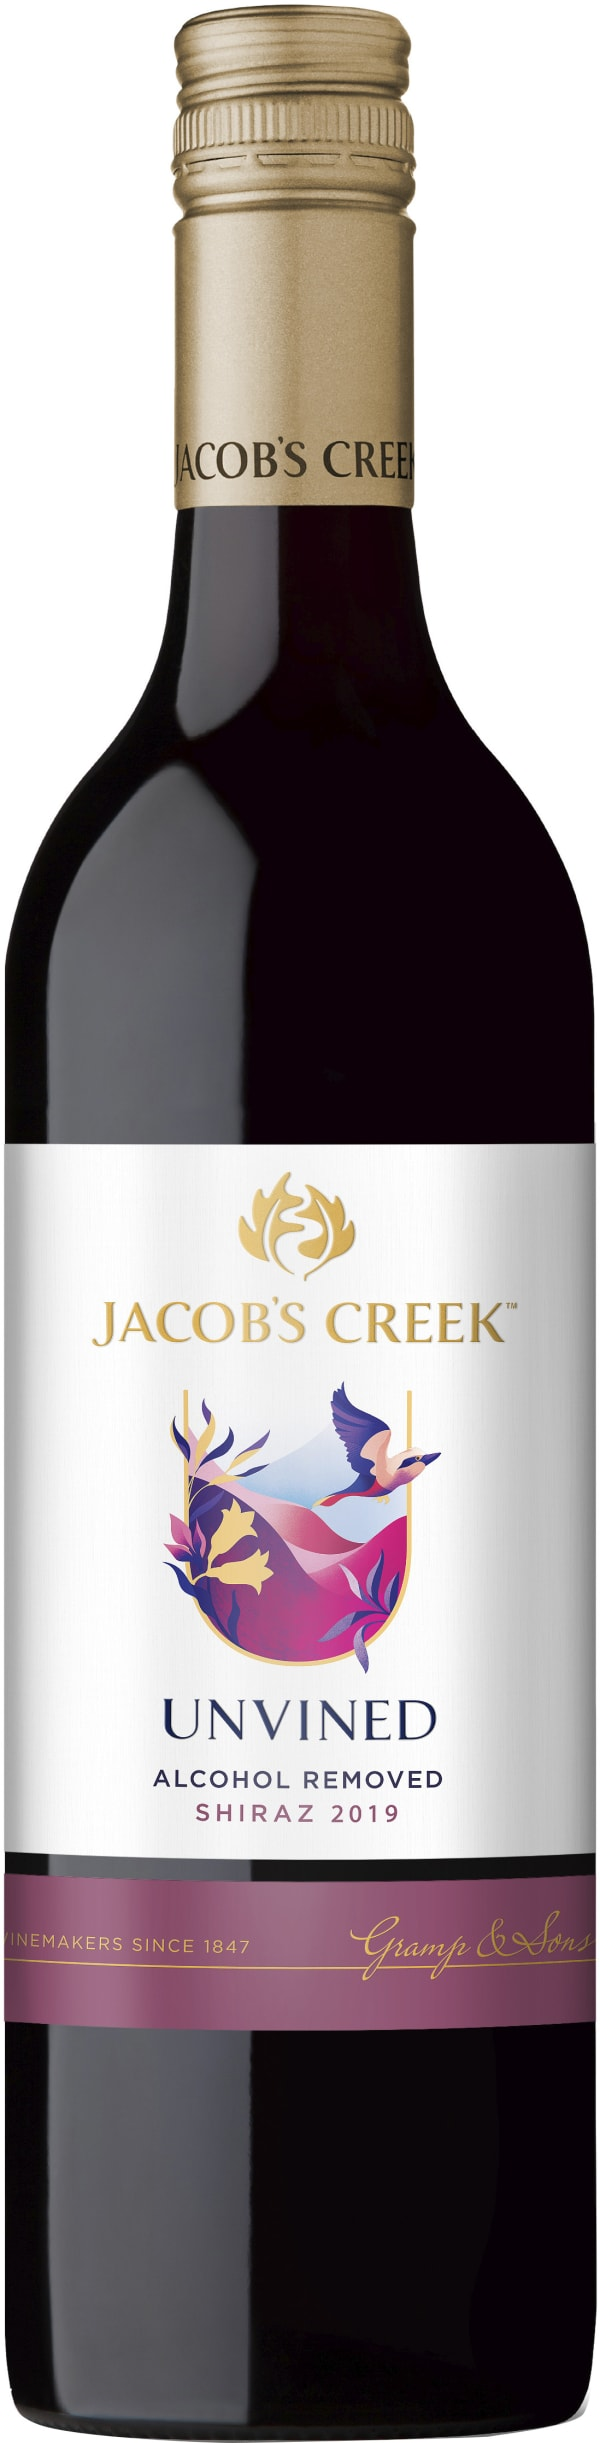 Jacob's Creek UnVined Shiraz 2016